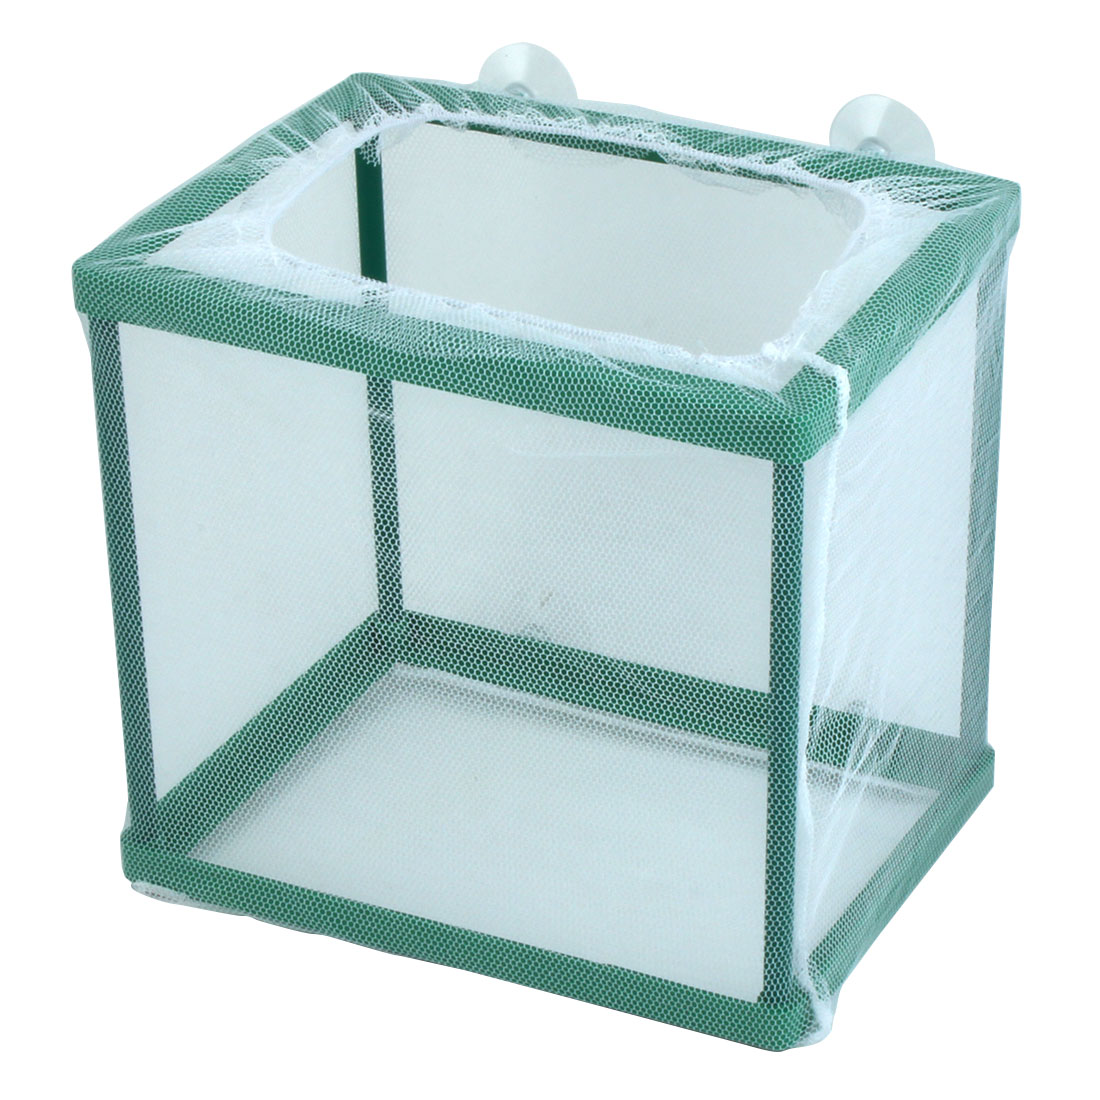 Fish Tank Aquarium Frame Net Fry Hatchery Breeder White 17 x 12.7 x 16.3cm